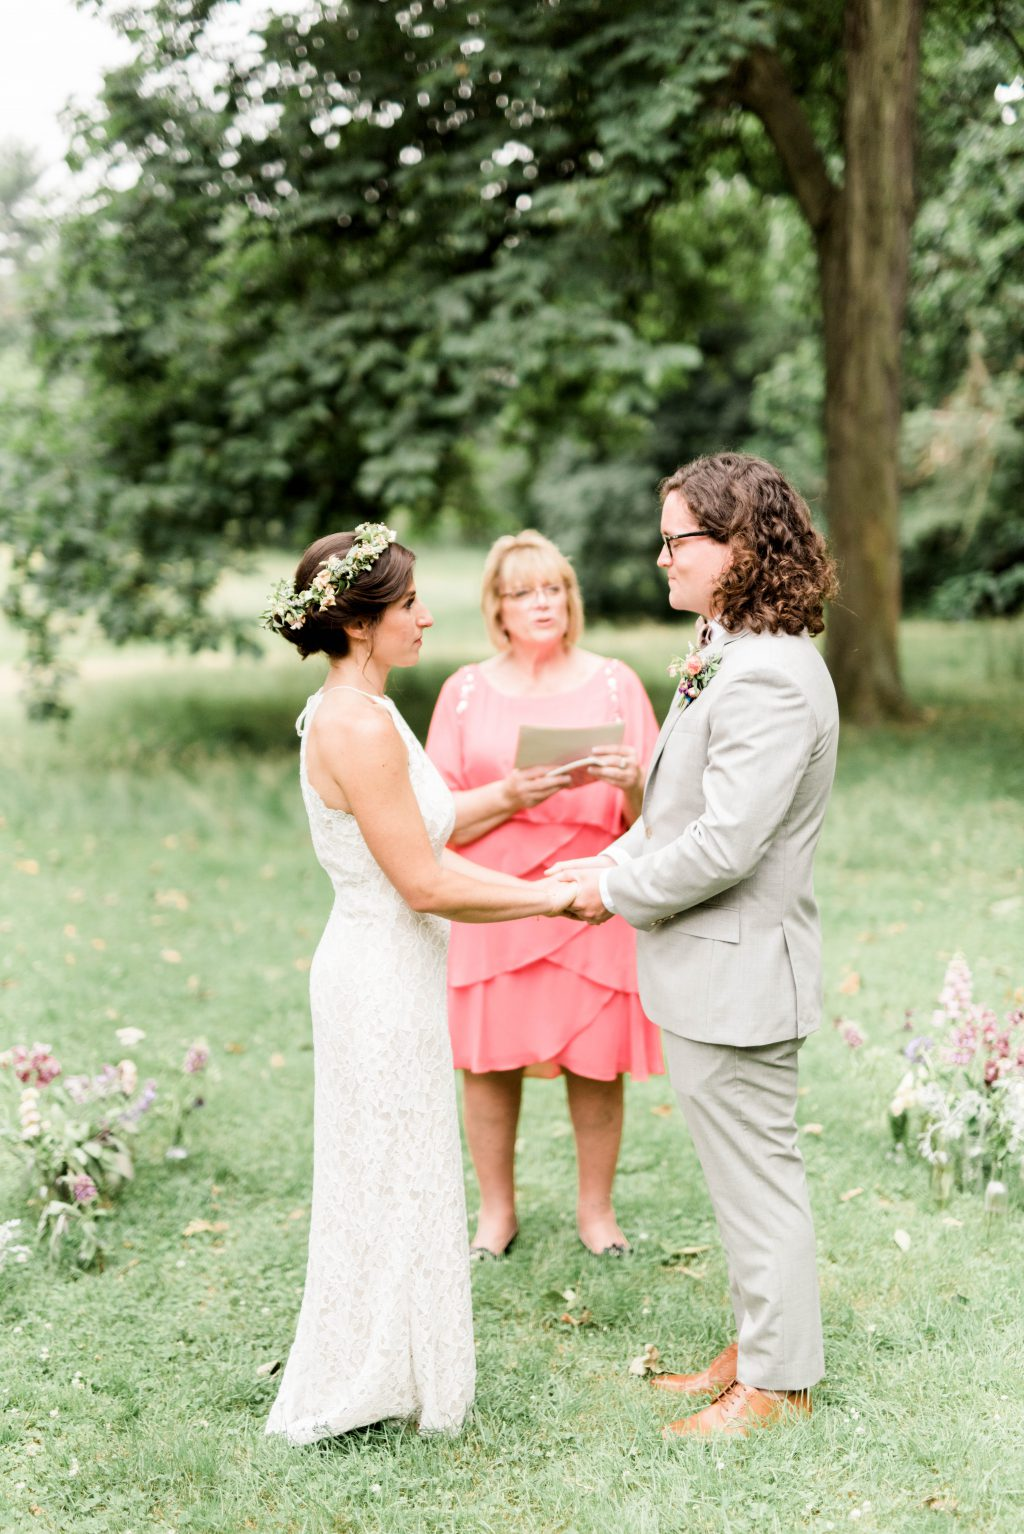 awbury-arboretum-wedding-DIY-boho-summer-haley-richter-photography-142